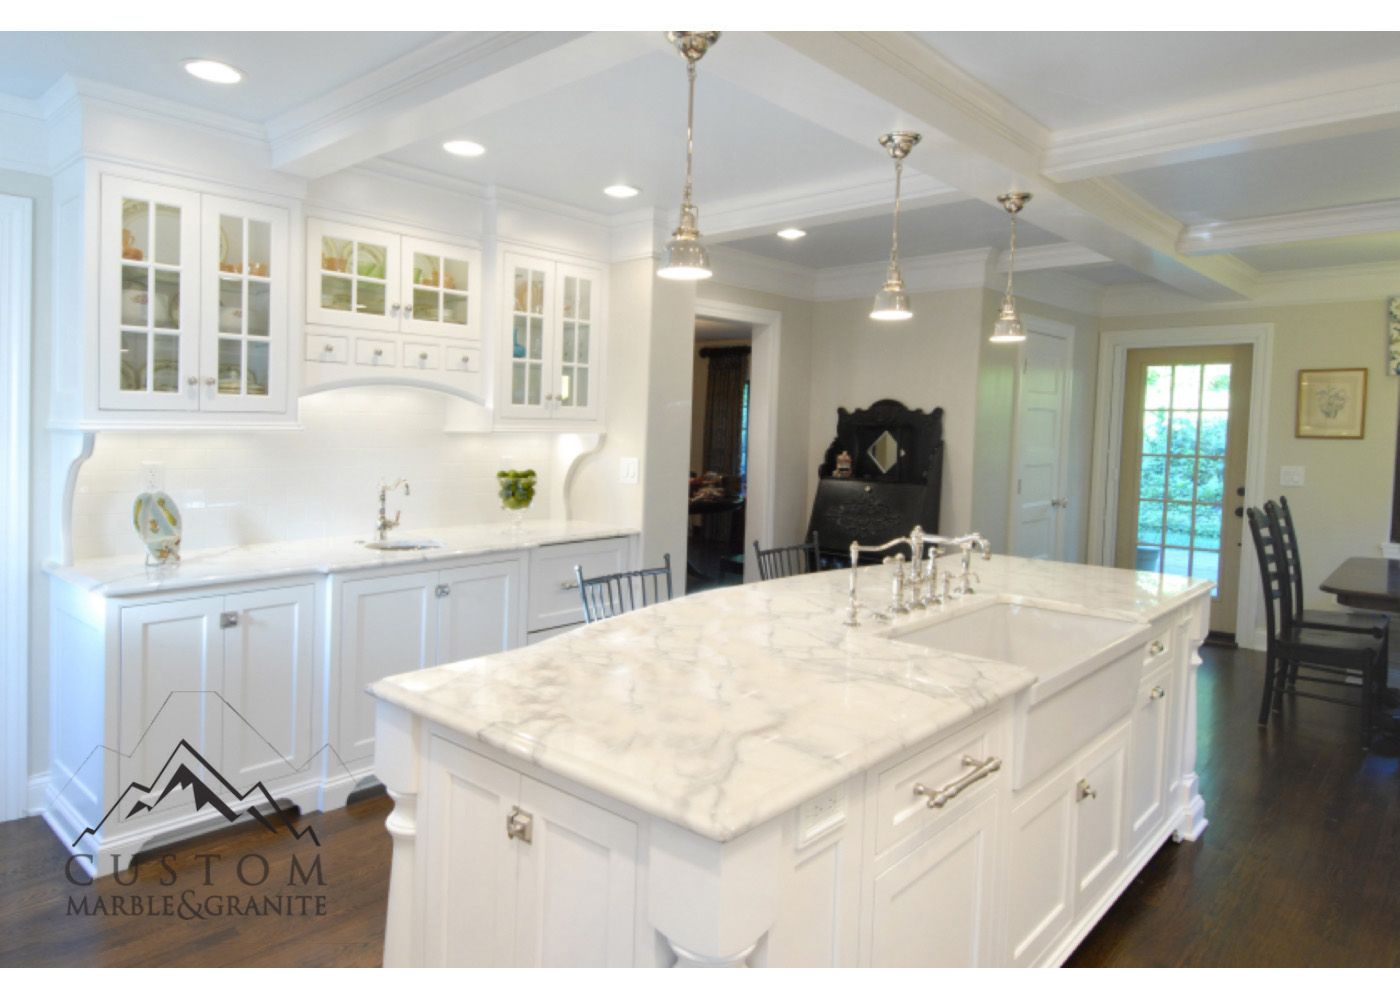 Best Beautiful White Calacatta Gold Marble Counters With Ogee 400 x 300